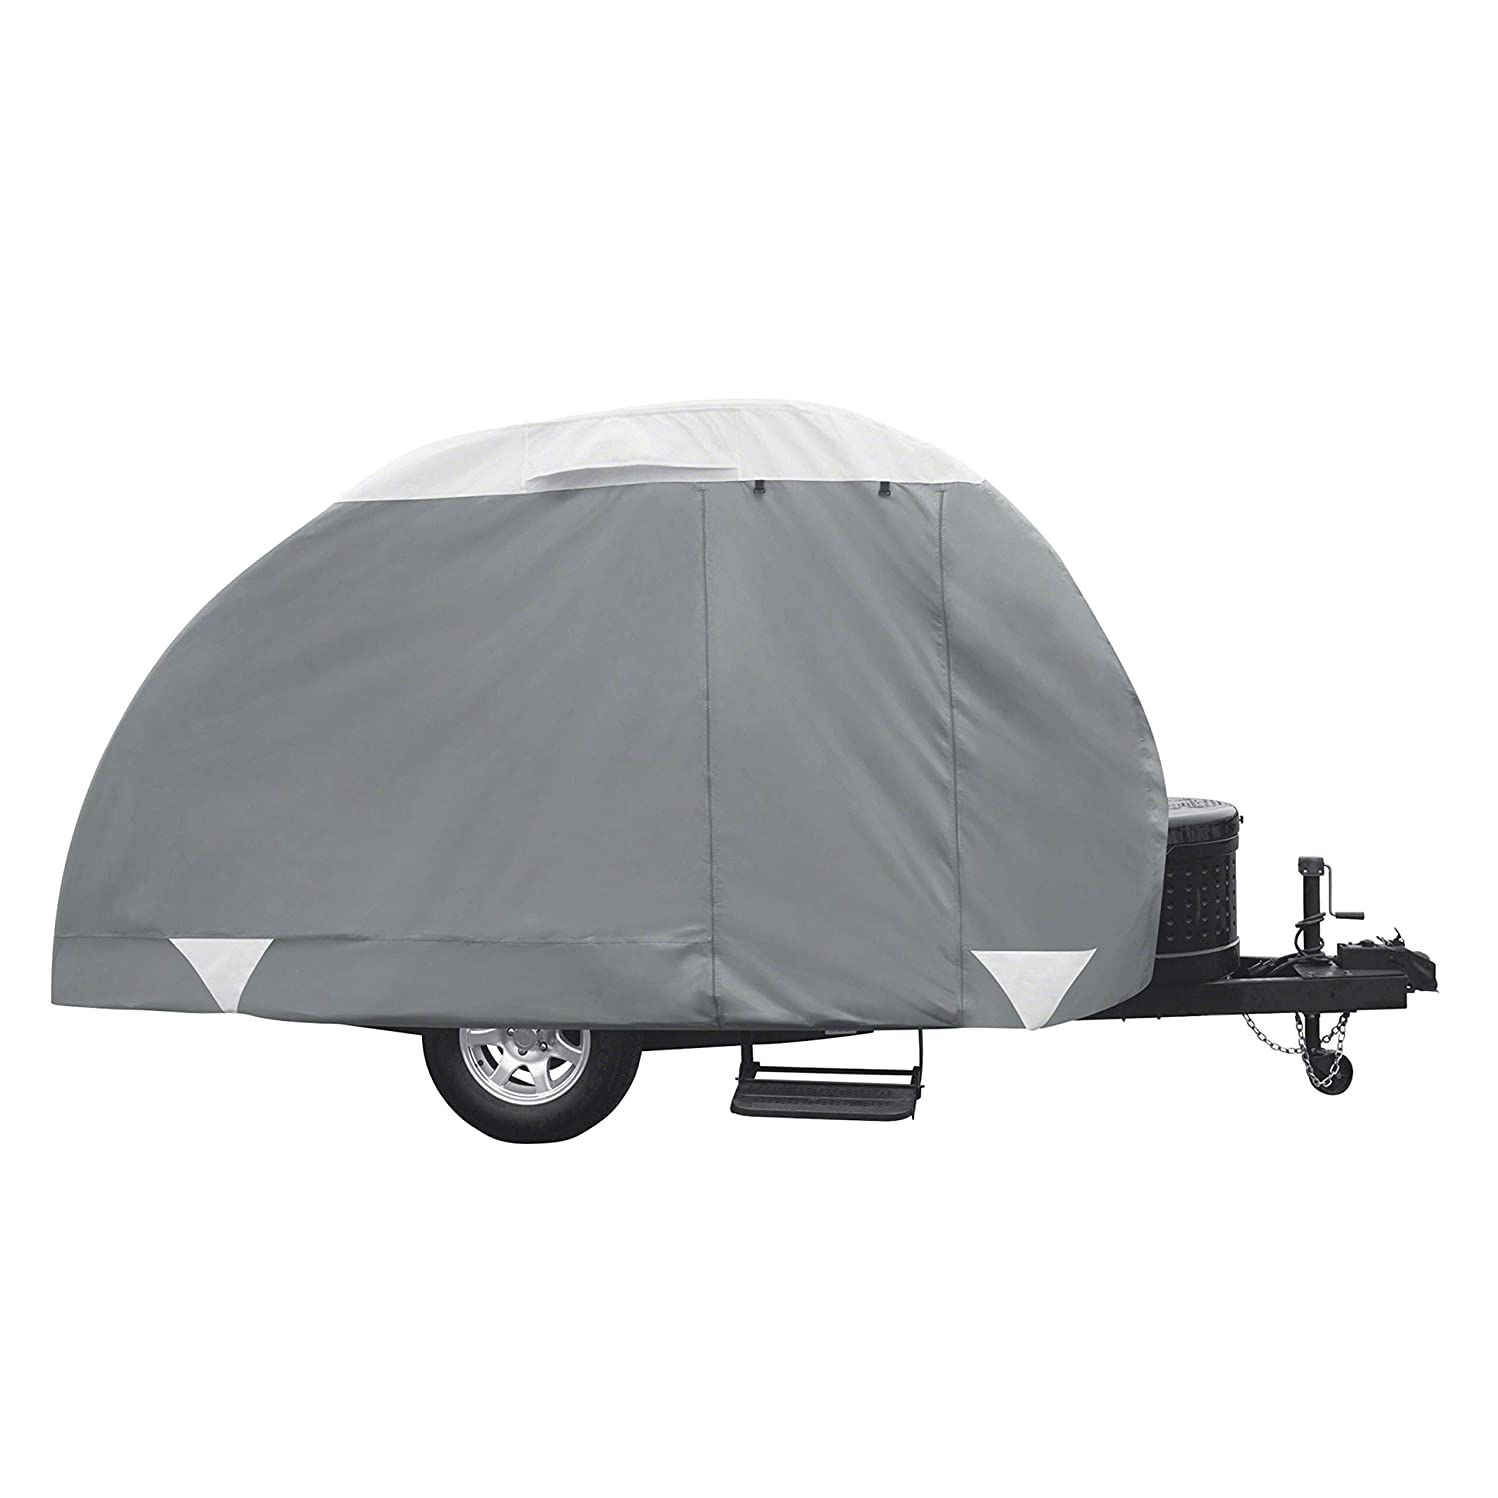 Classic Accessories PolyPro 3 Teardrop Camping Trailer Cover, Up To 96